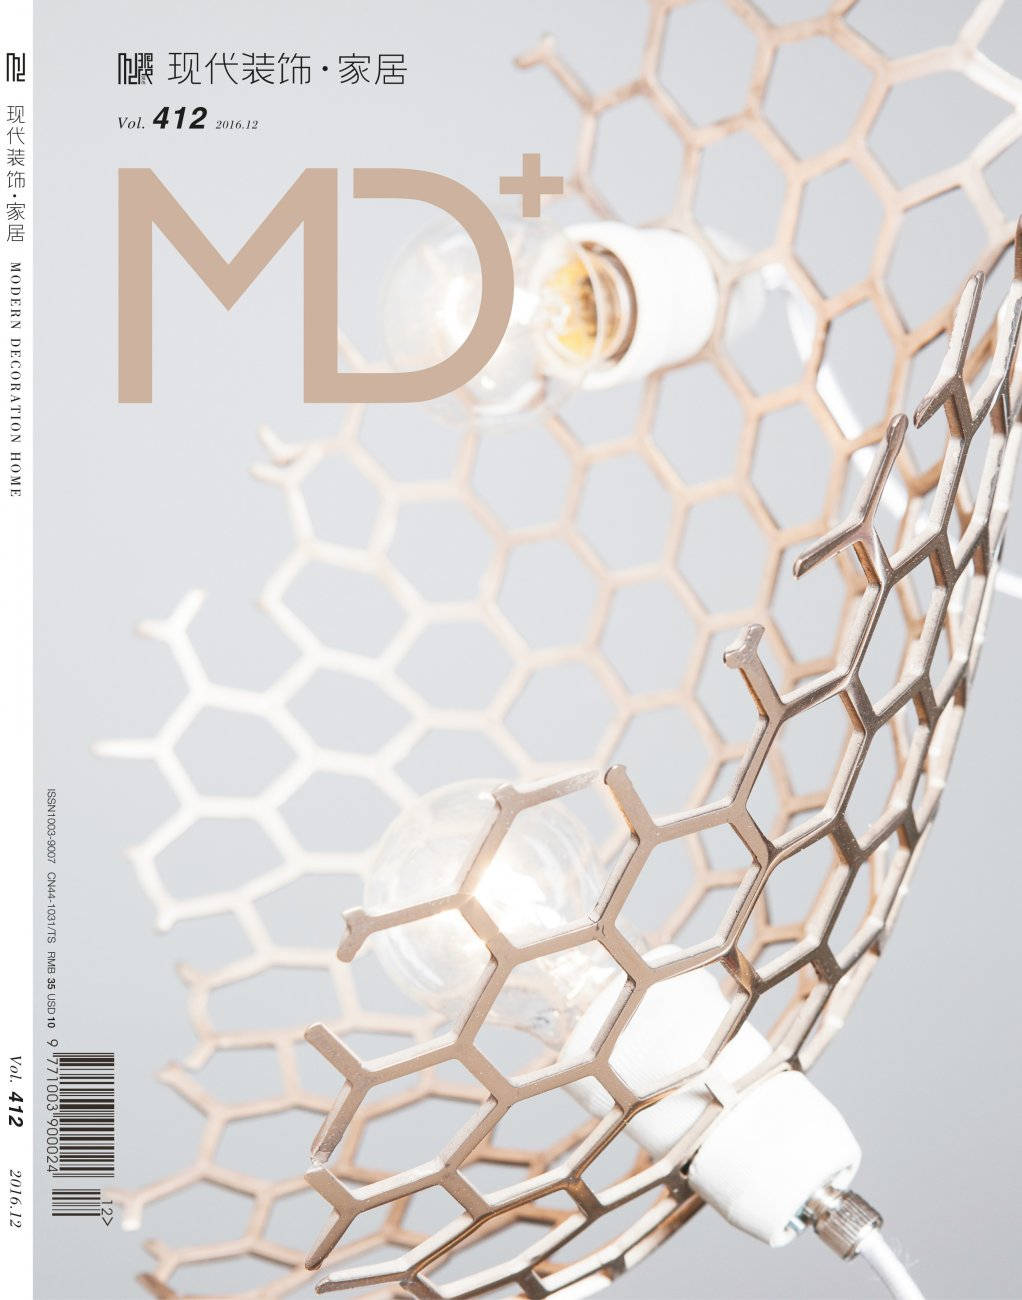 MD+ Vol.412 / December 2016 / MD+ Magazine